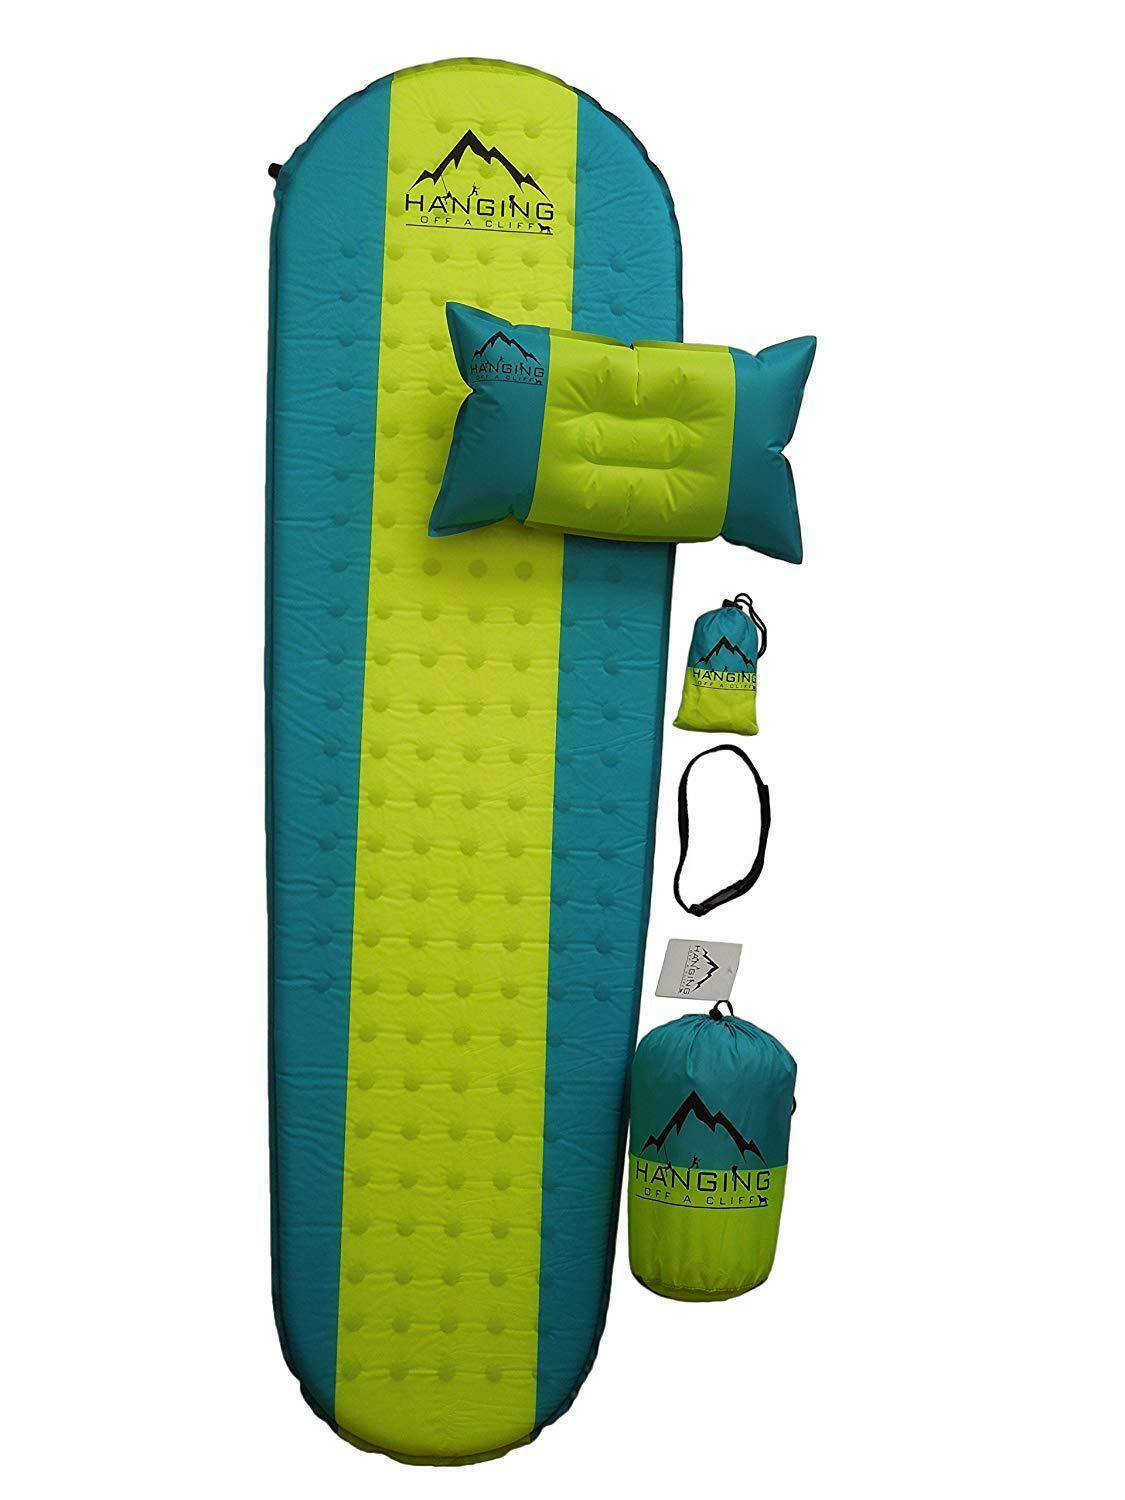 Premium Self Inflating Sleeping Pad with Pillow Insulated for Hiking & Camping